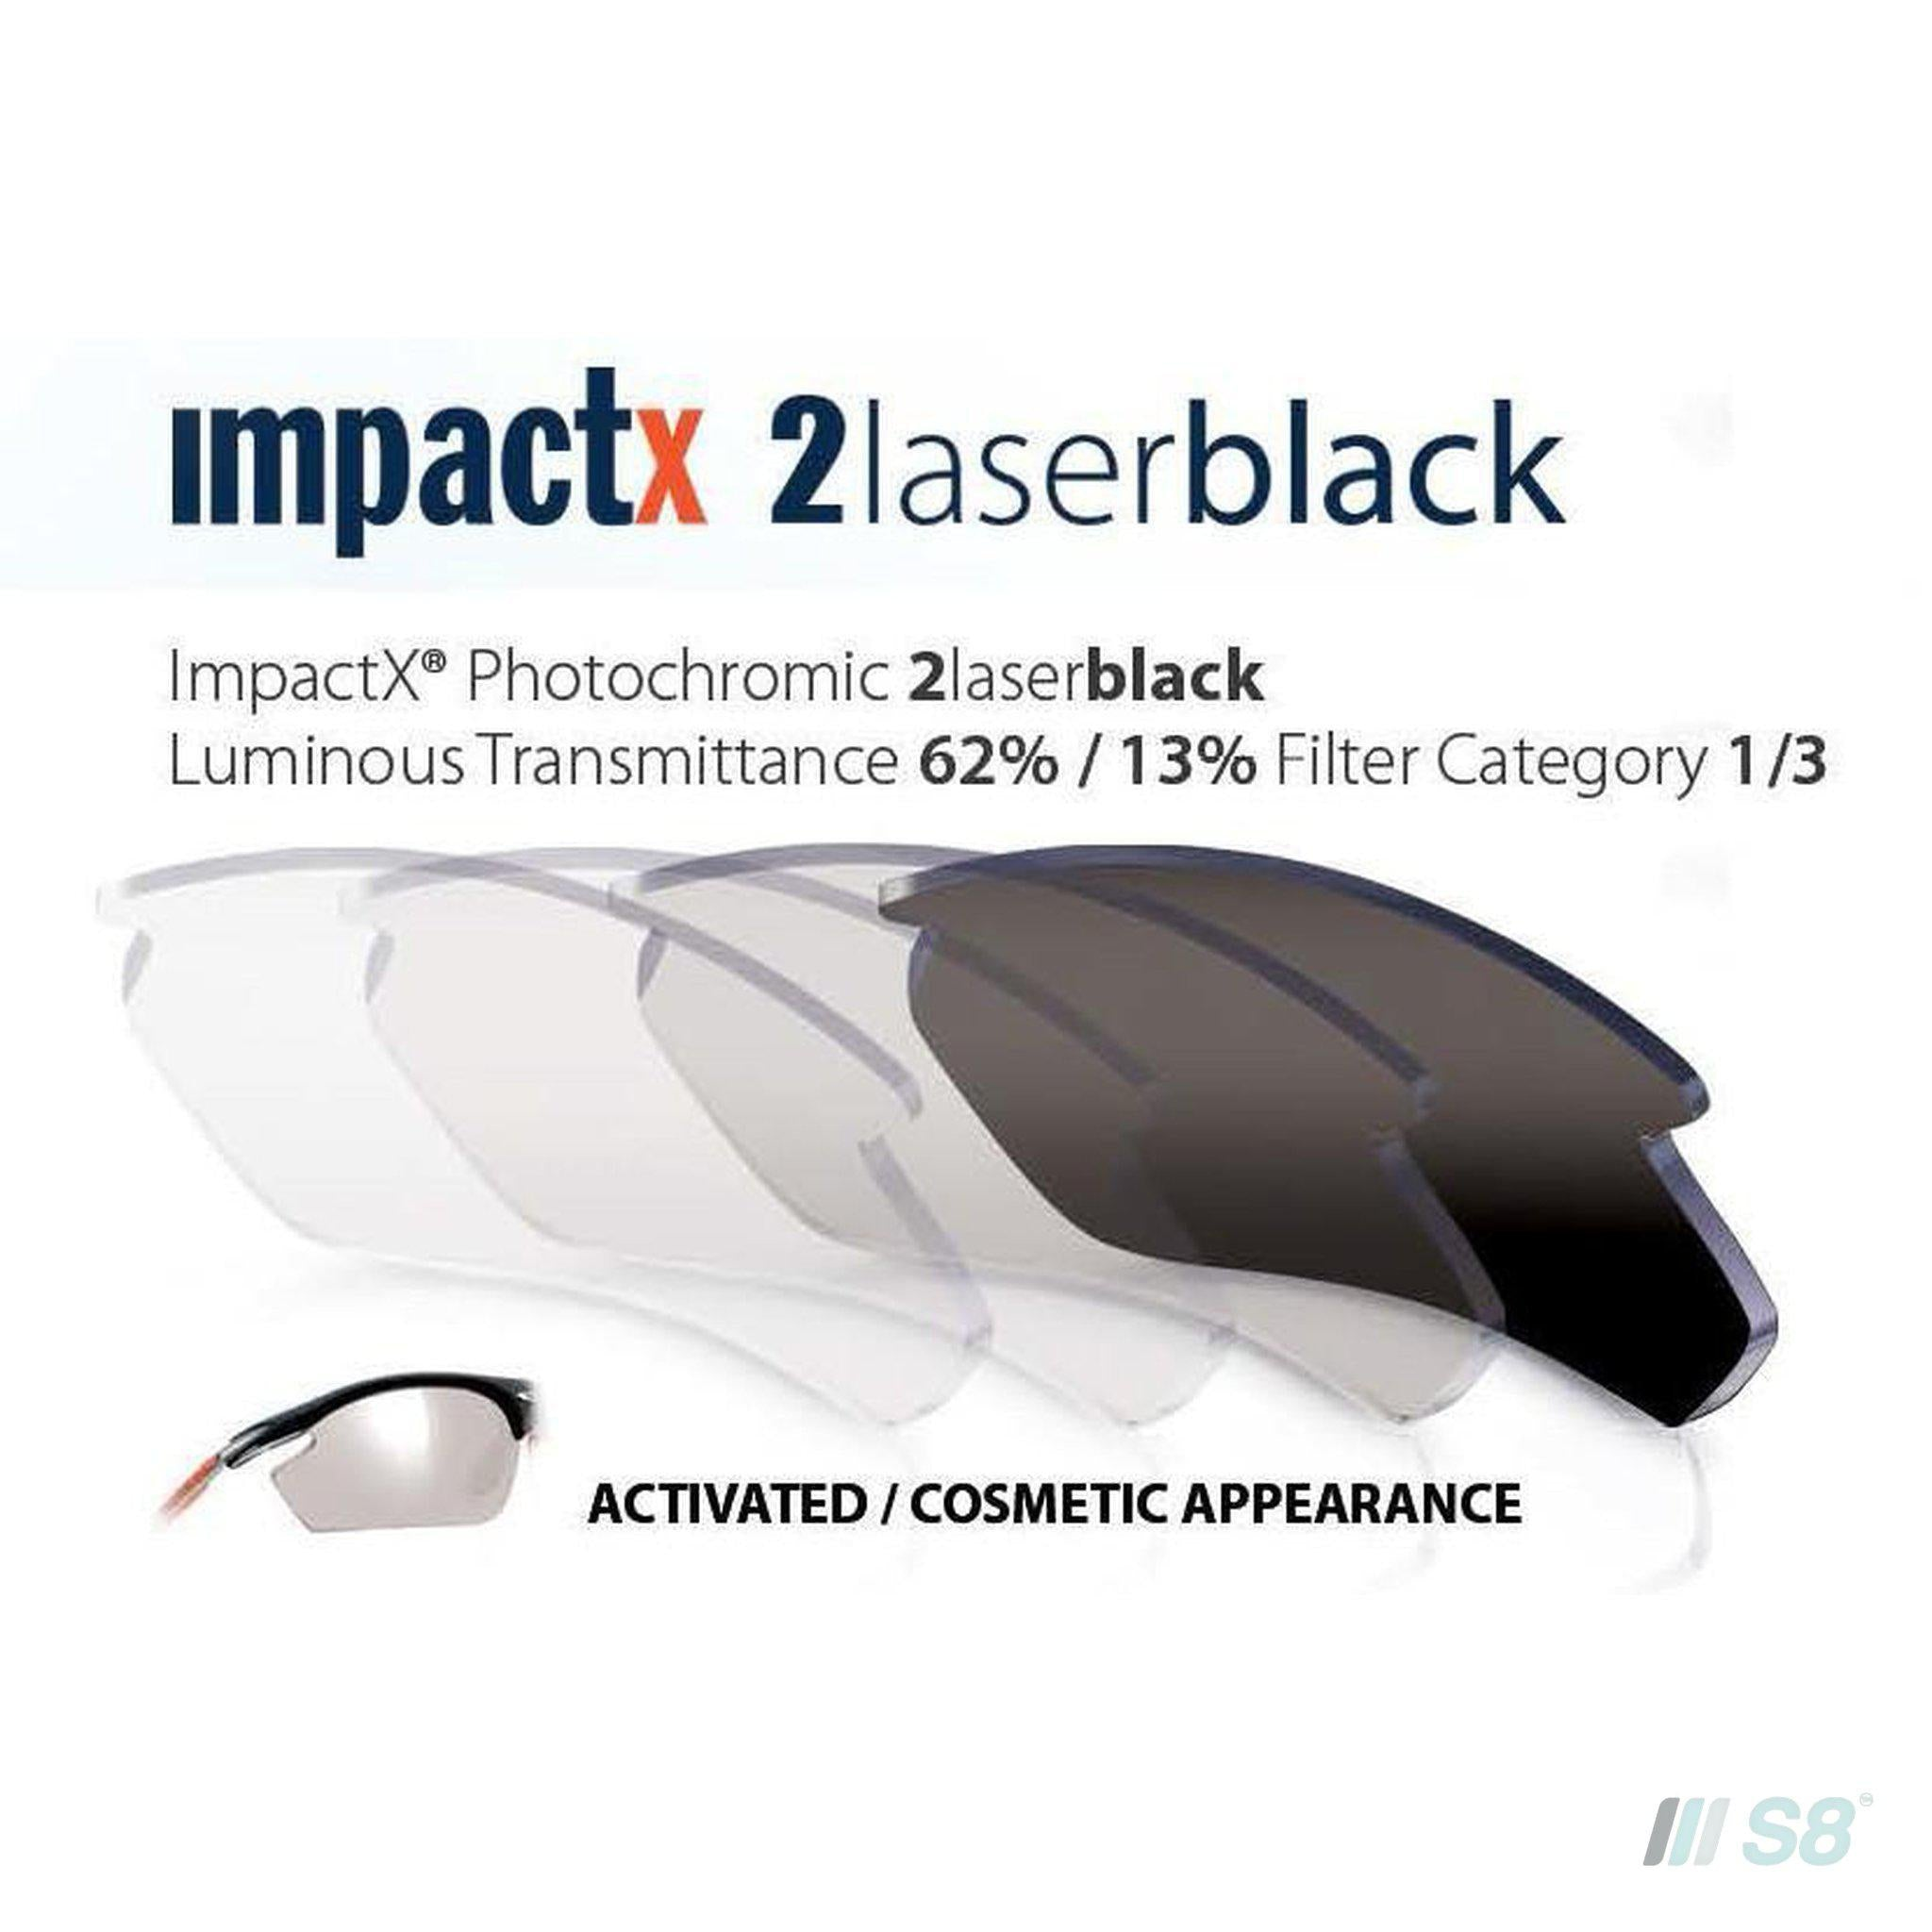 Rudy Project - Tralyx Sunglasses / Ice Graphite Matte / Impactx 2 Photochromic Laser Black lenses-Rudy Project-S8 Products Group